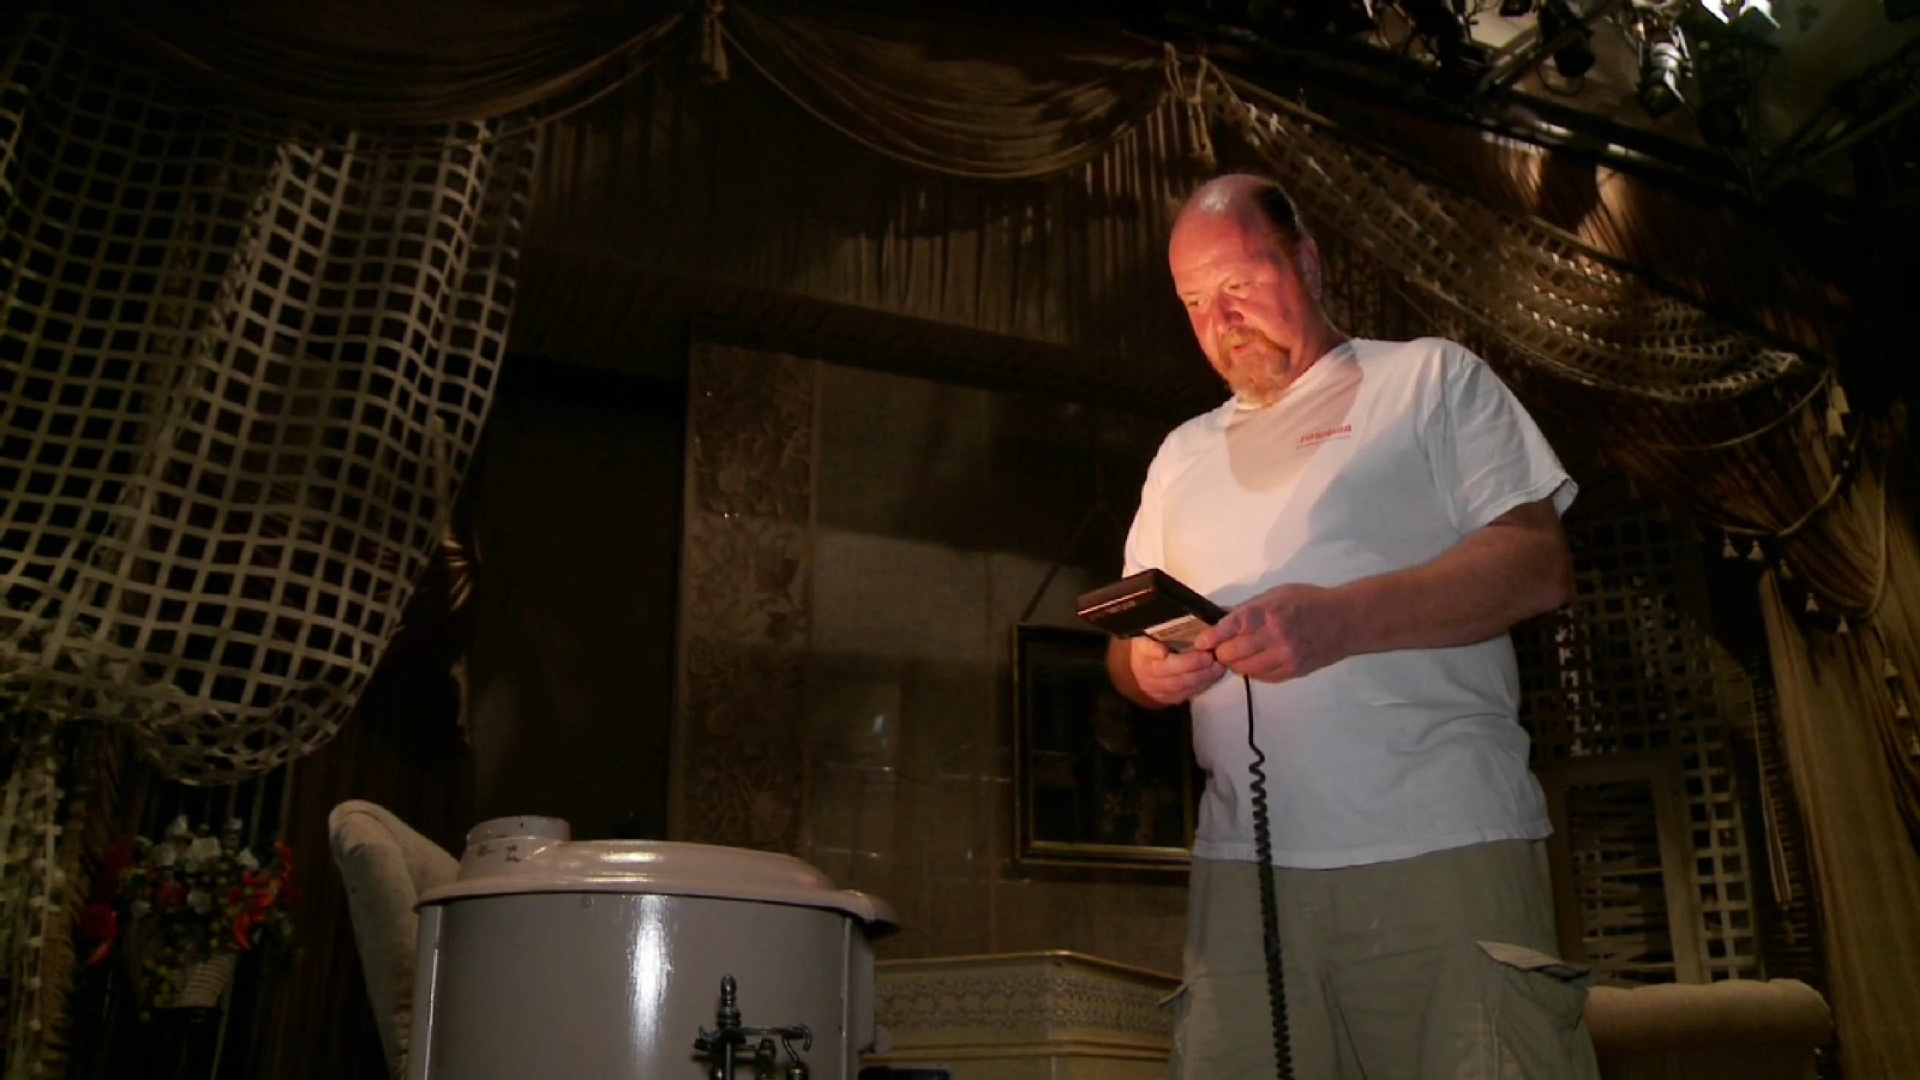 Lighting Hedda Gabler and the Fire in the Stove